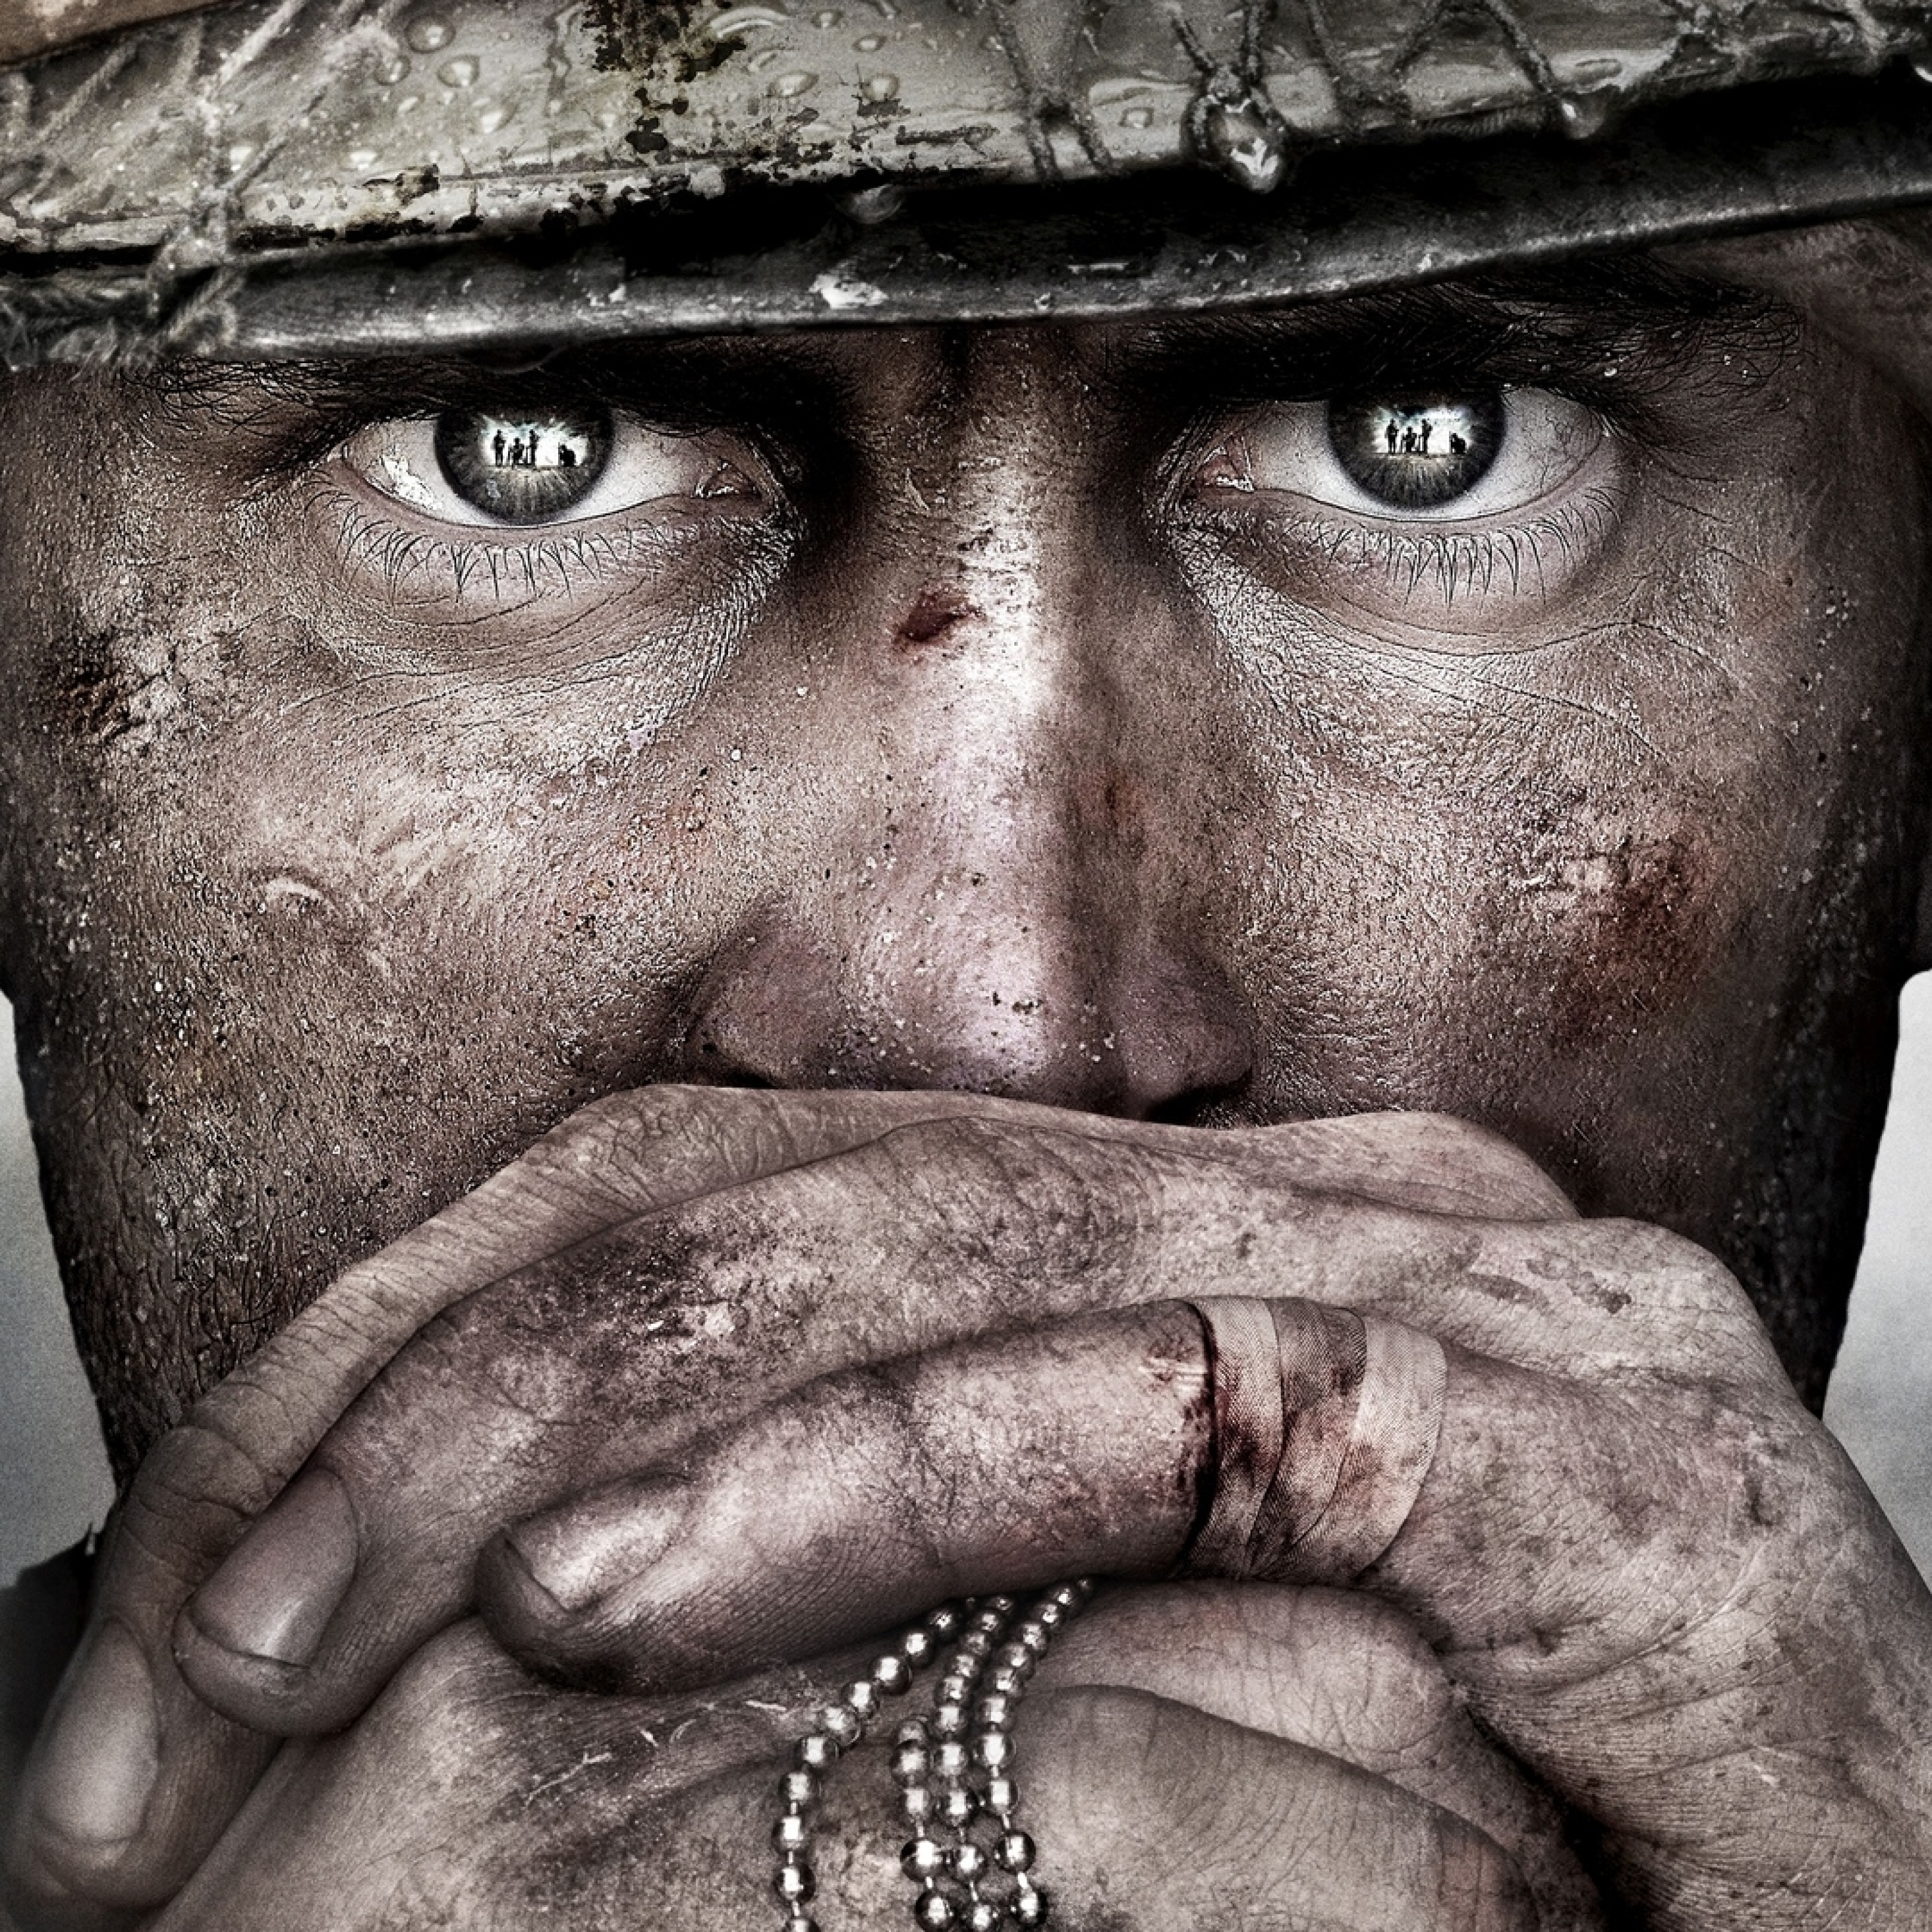 2932x2932 Call Of Duty Wwii Ipad Pro Retina Display Wallpaper Hd